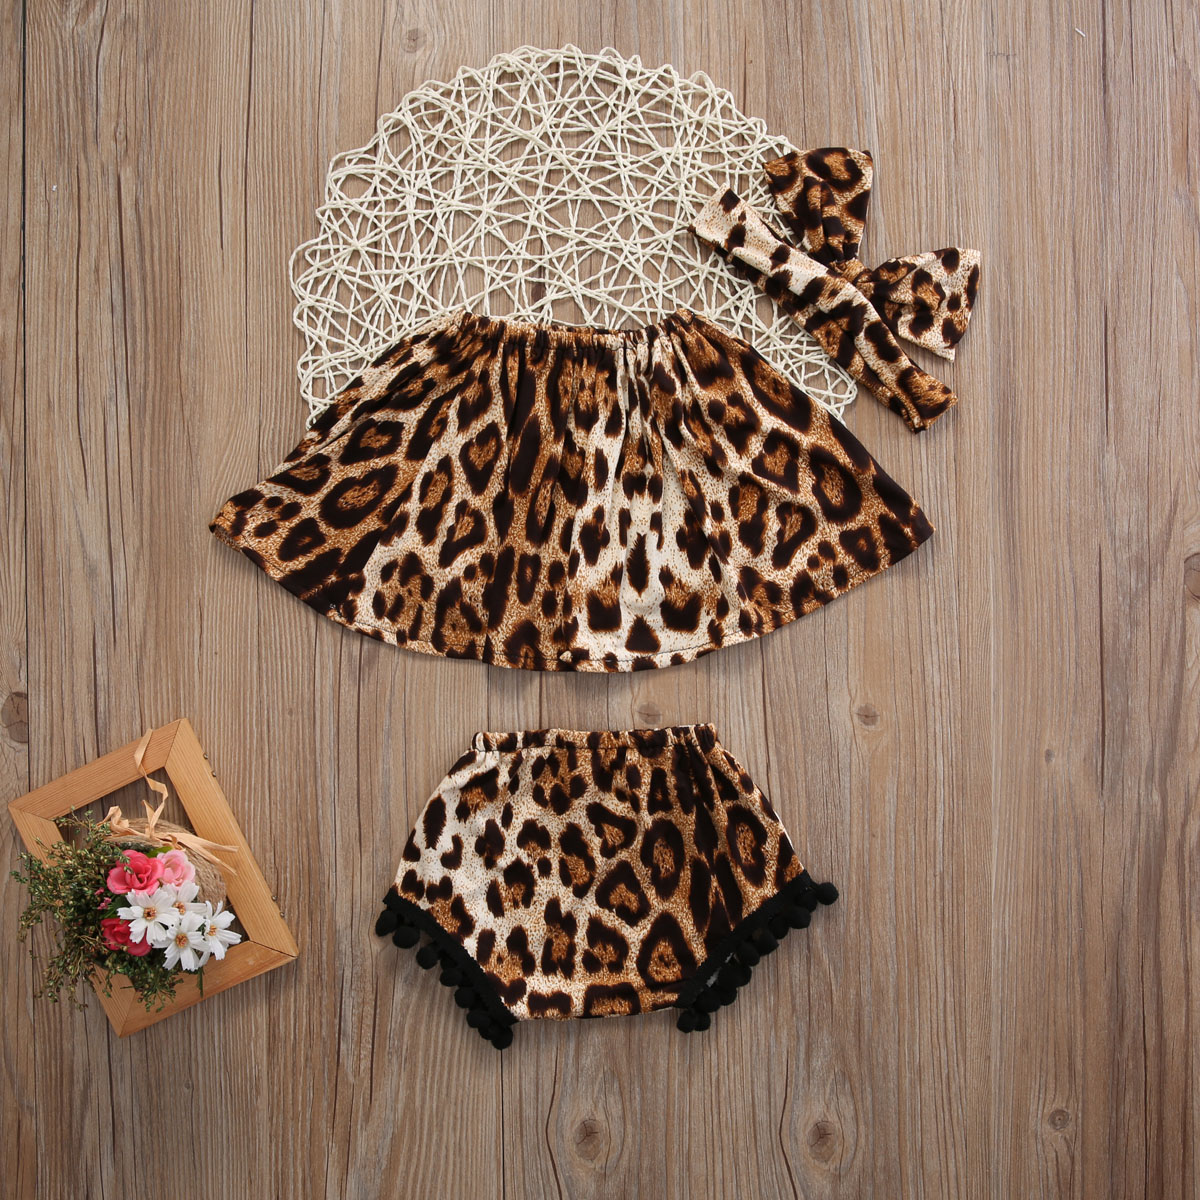 3Pcs Set Newborn Infant Baby Girl Clothes Off Shoulder Sleeveless Leopard Tops+Short Pants+Headband Baby Clothes Outfits 3pcs set newborn infant baby boy girl clothes 2017 summer short sleeve leopard floral romper bodysuit headband shoes outfits